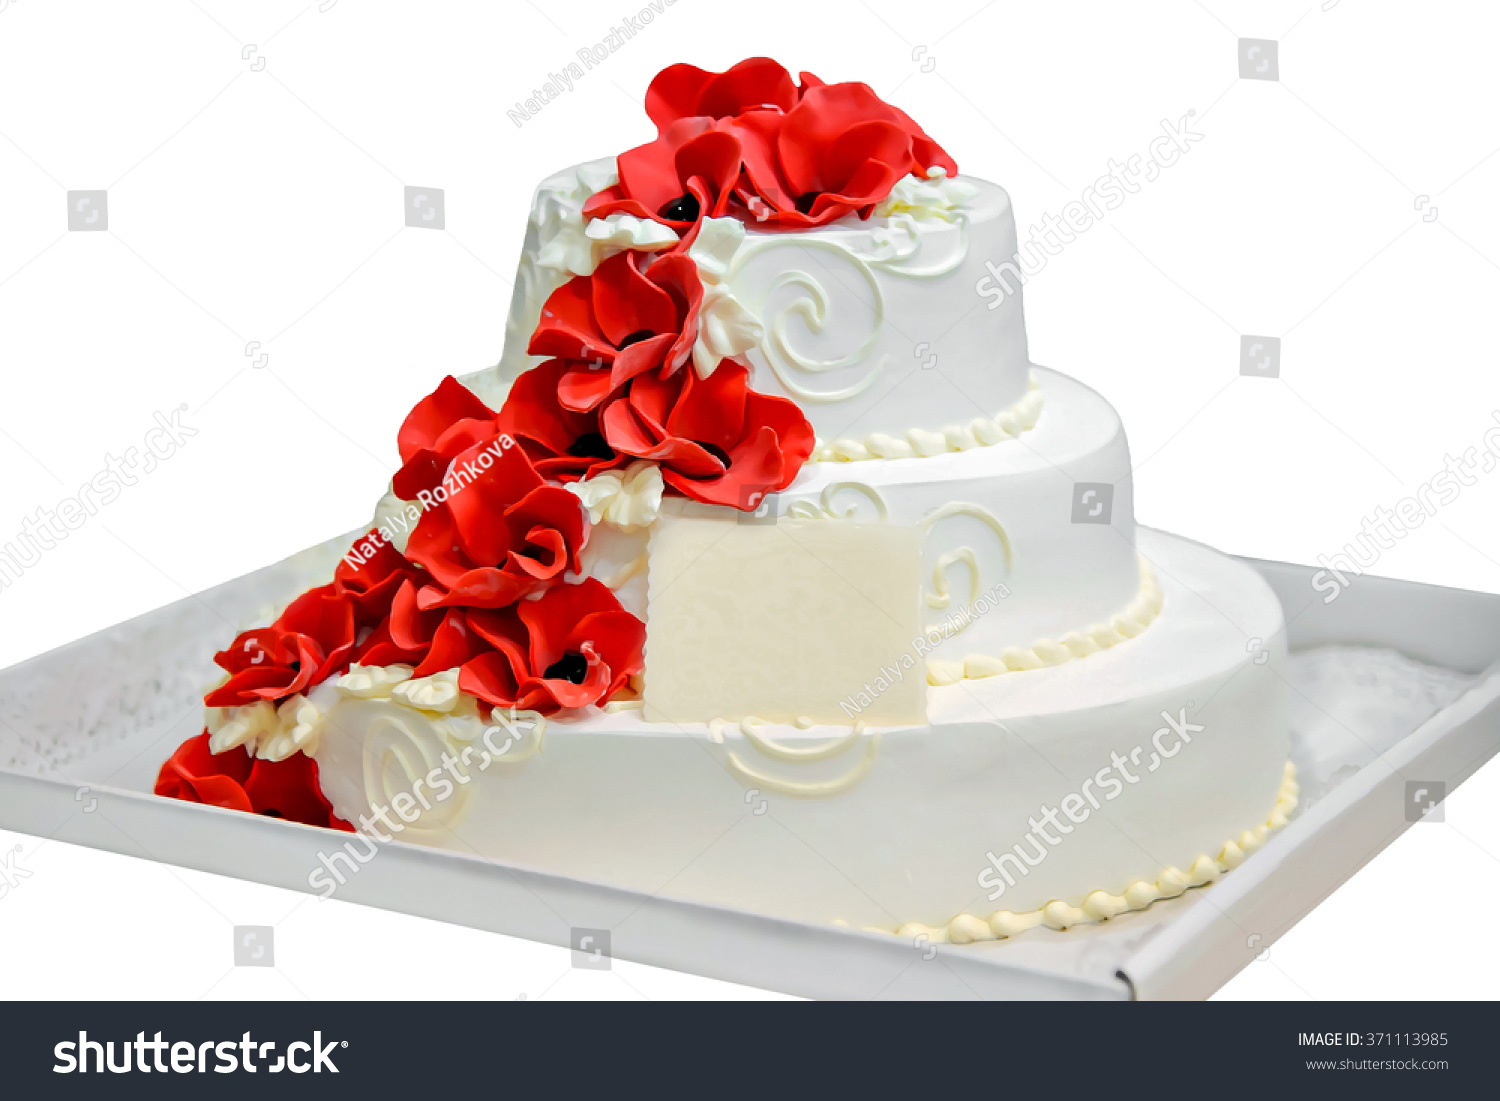 Royalty Free Stock Illustration Of Birthday Cake Card Writing Text